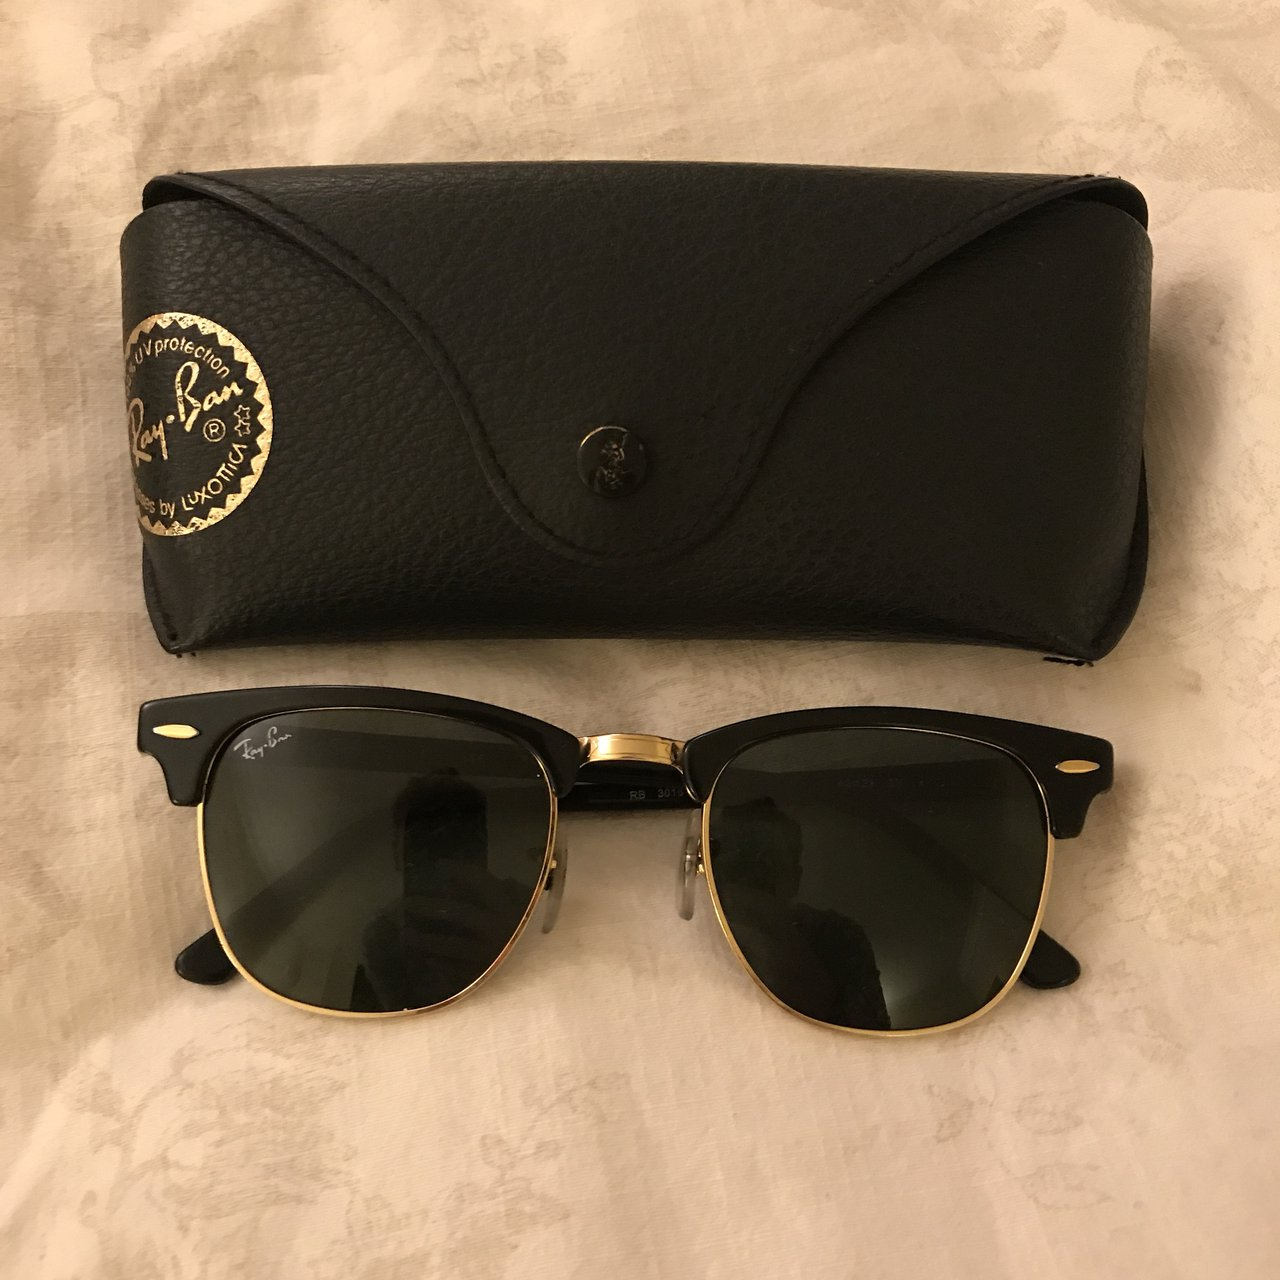 46b66032ae5 Ray-ban Clubmasters! Black with gold frame Very stylish